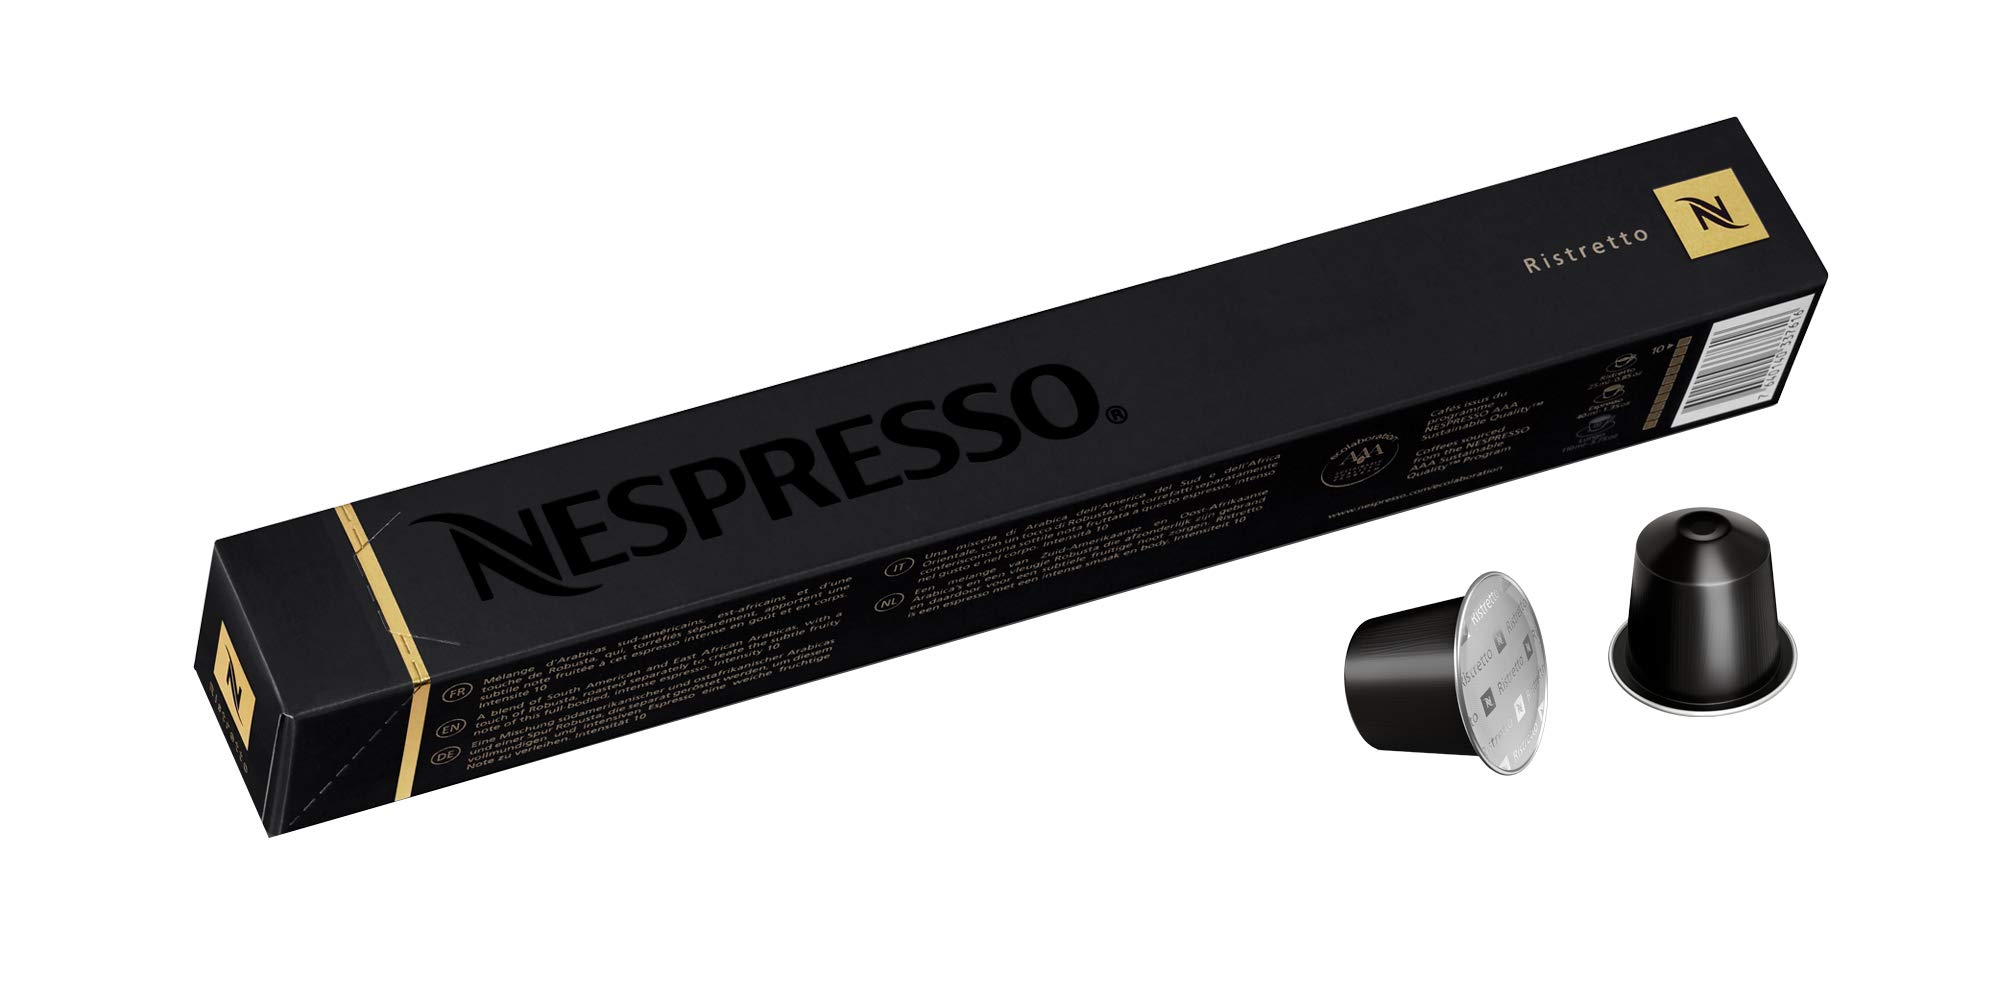 Nespresso Variety Pack Capsules, 50 Count by Nespresso (Image #6)